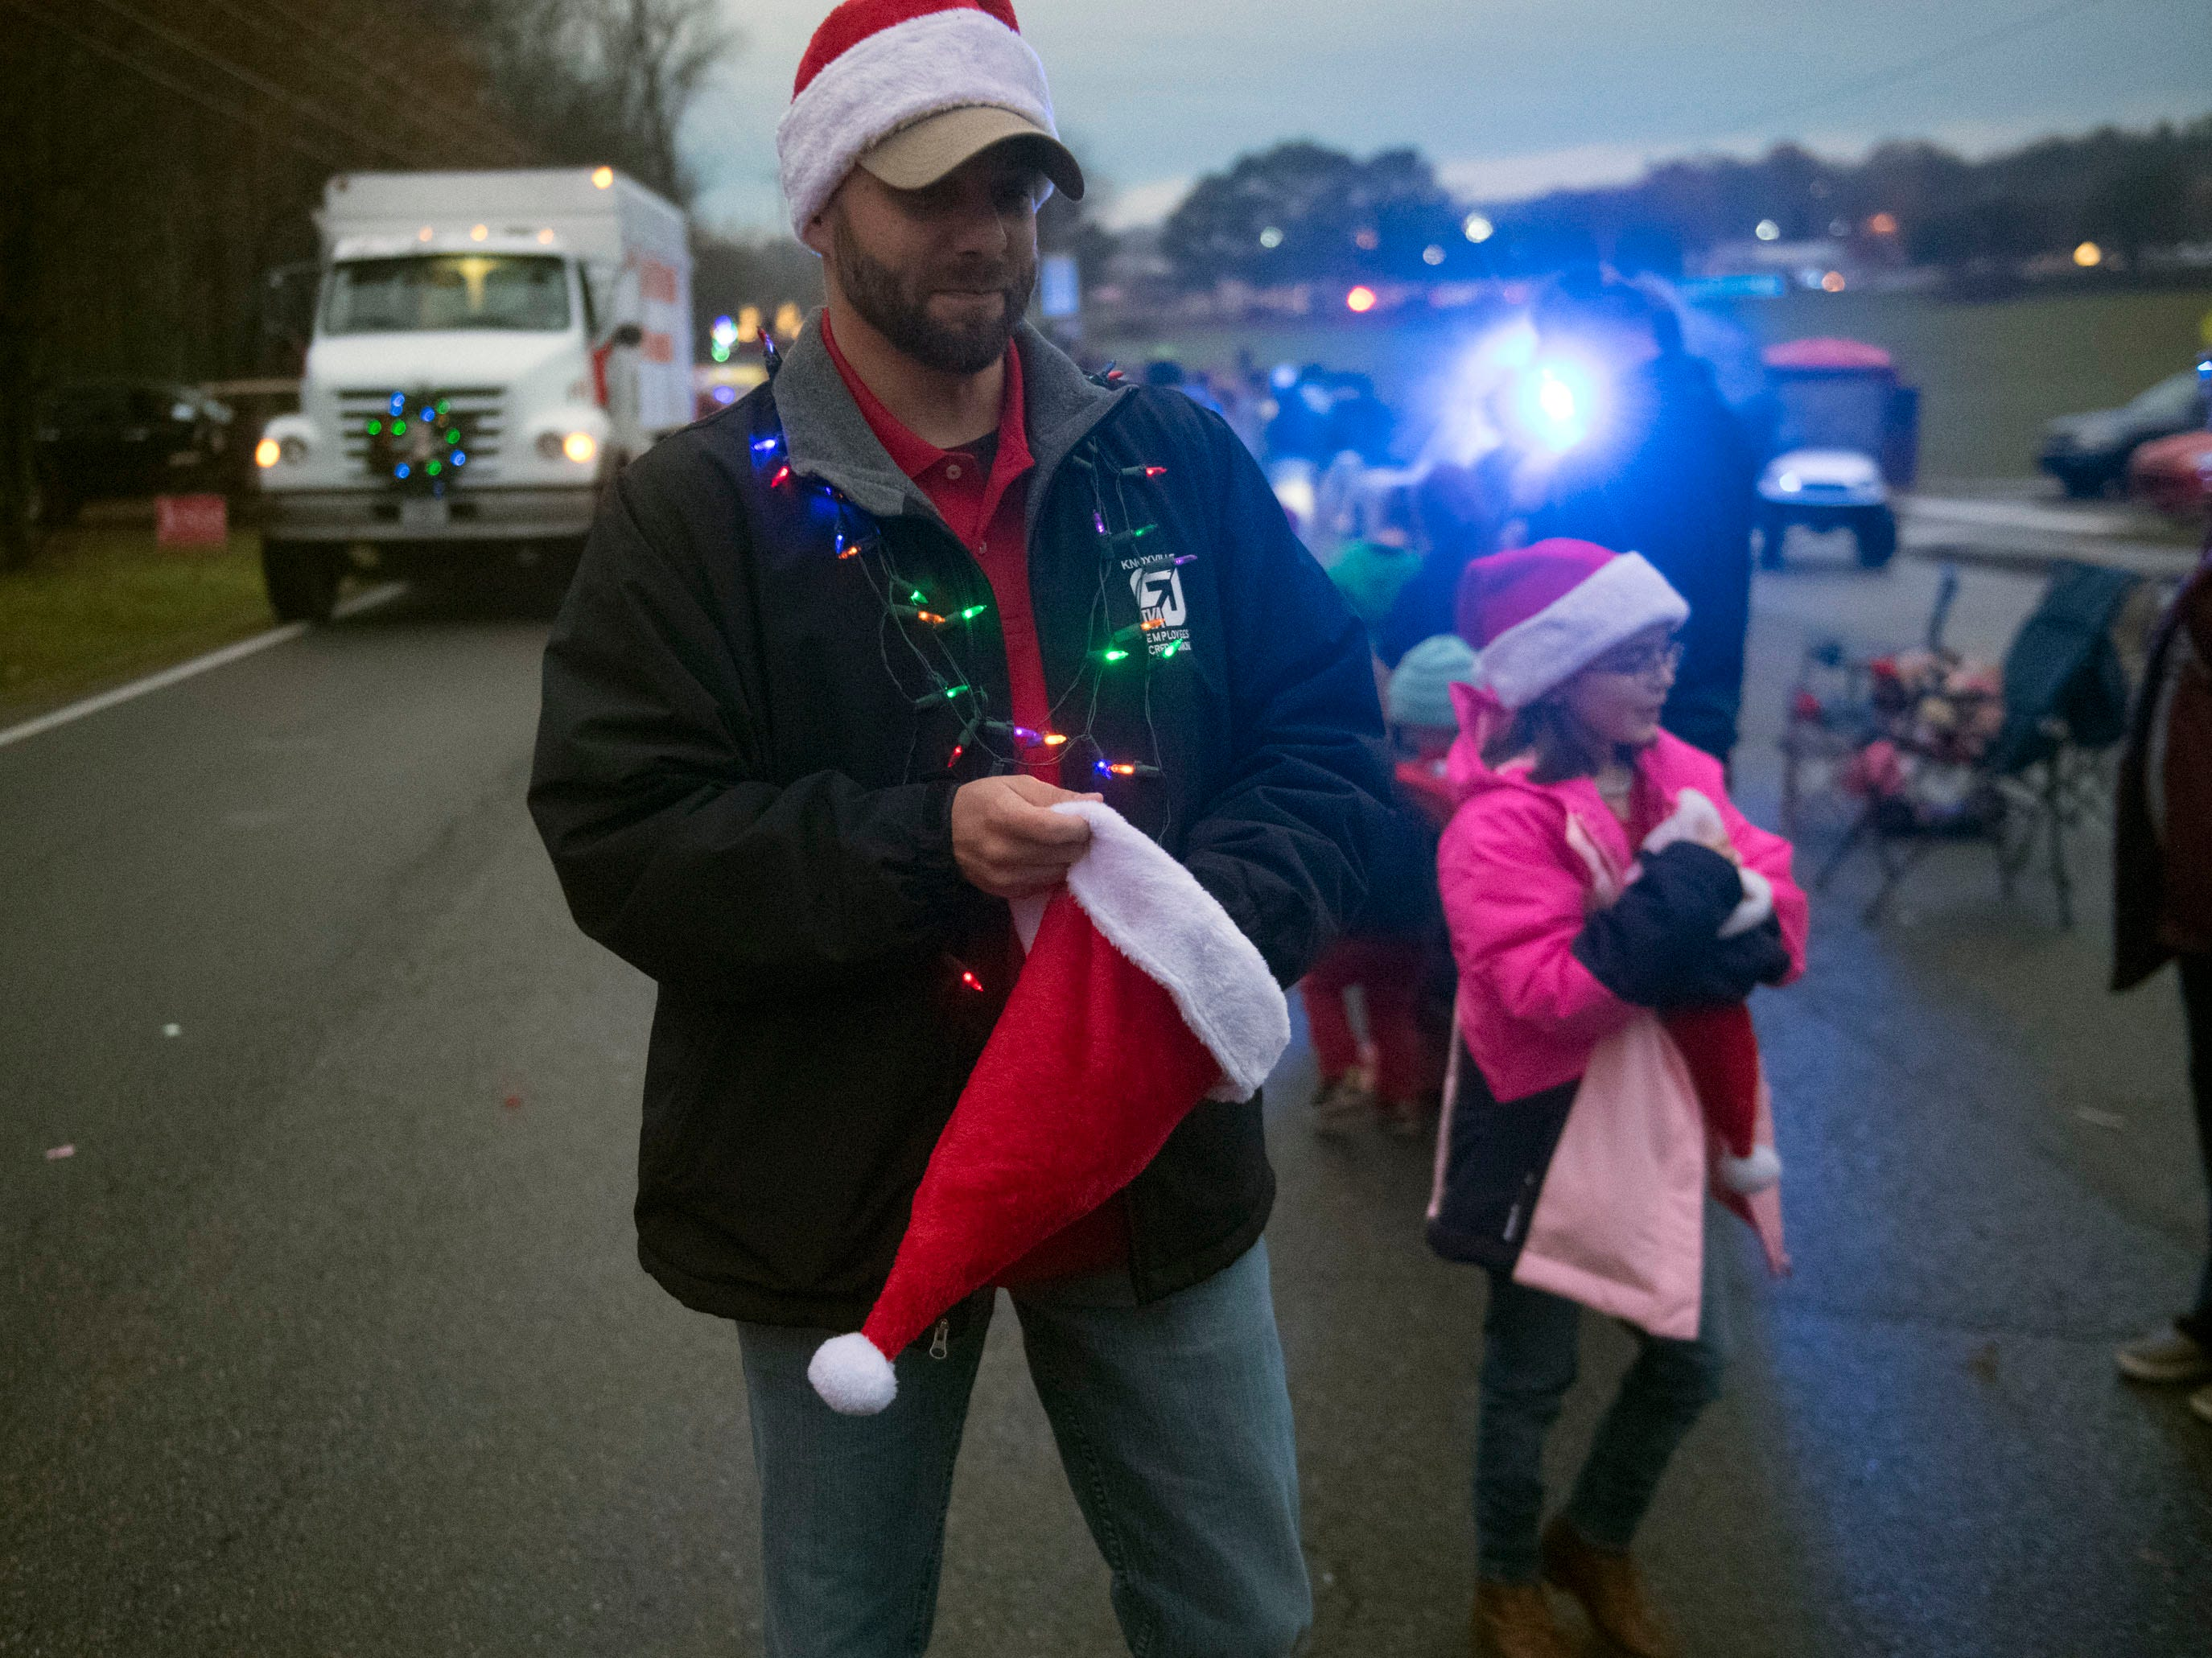 TVA Employees Credit Union in the Powell Lions Club Christmas Parade on Saturday, December 1, 2018.